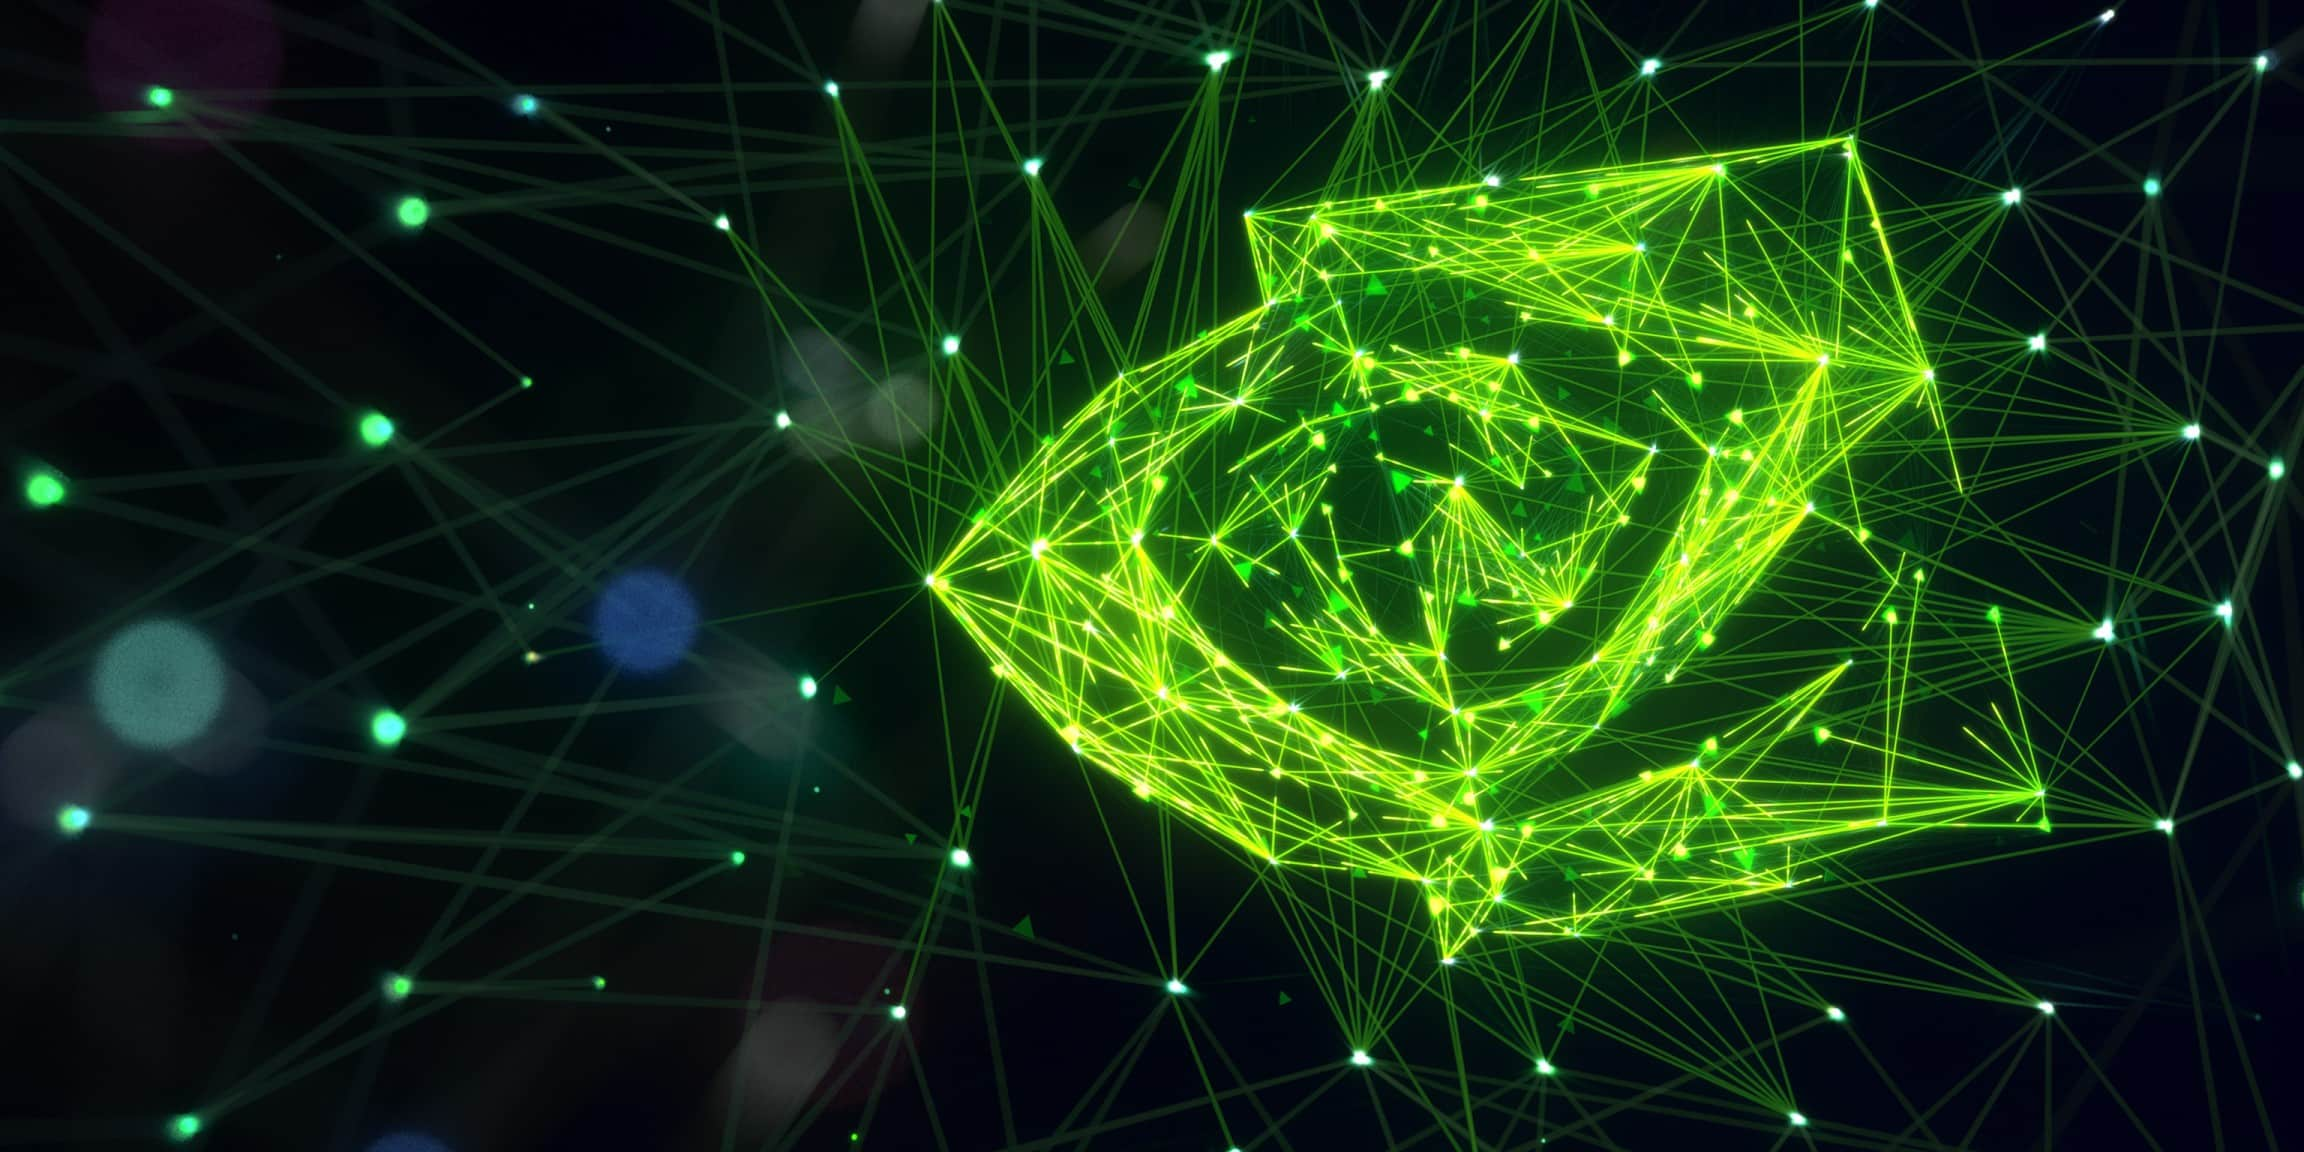 nvidia Geforce driver security NVIDIA RTX Program NVIDIA Lightspeed Studios Ray Tracing GeForce RTX